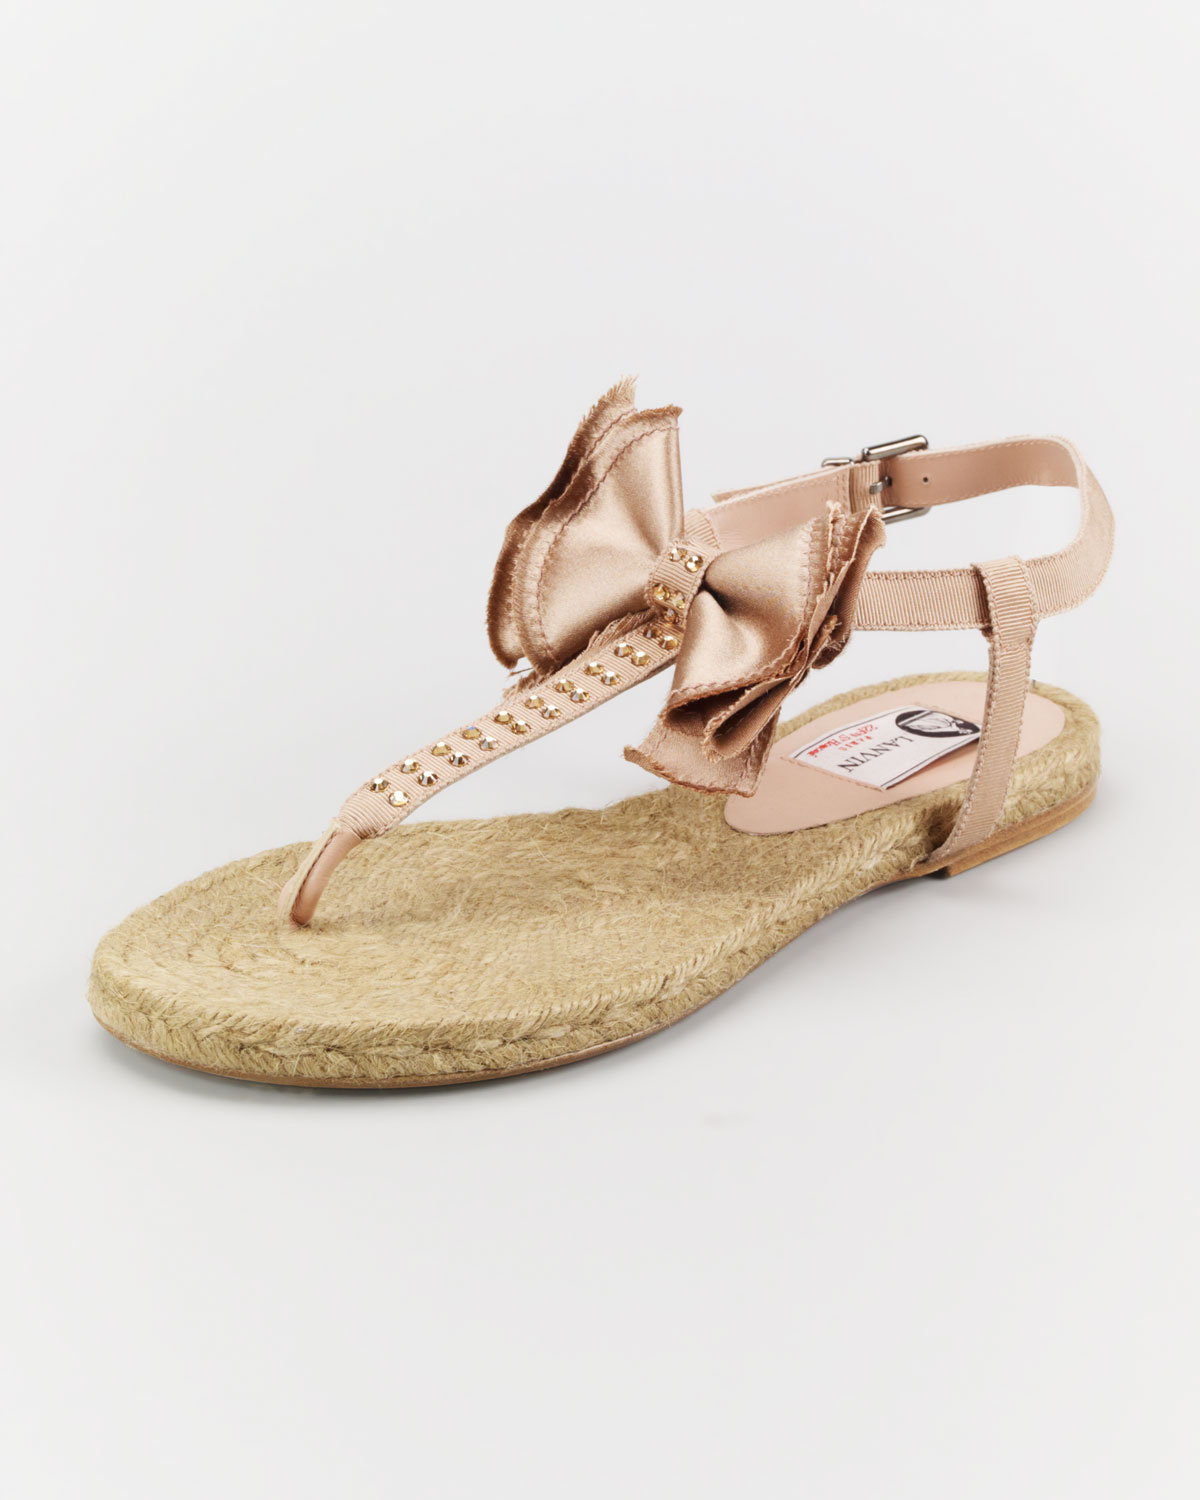 4f969c5f1f148 Lyst - Lanvin Satin Bow Espadrille Thong Sandal in Brown